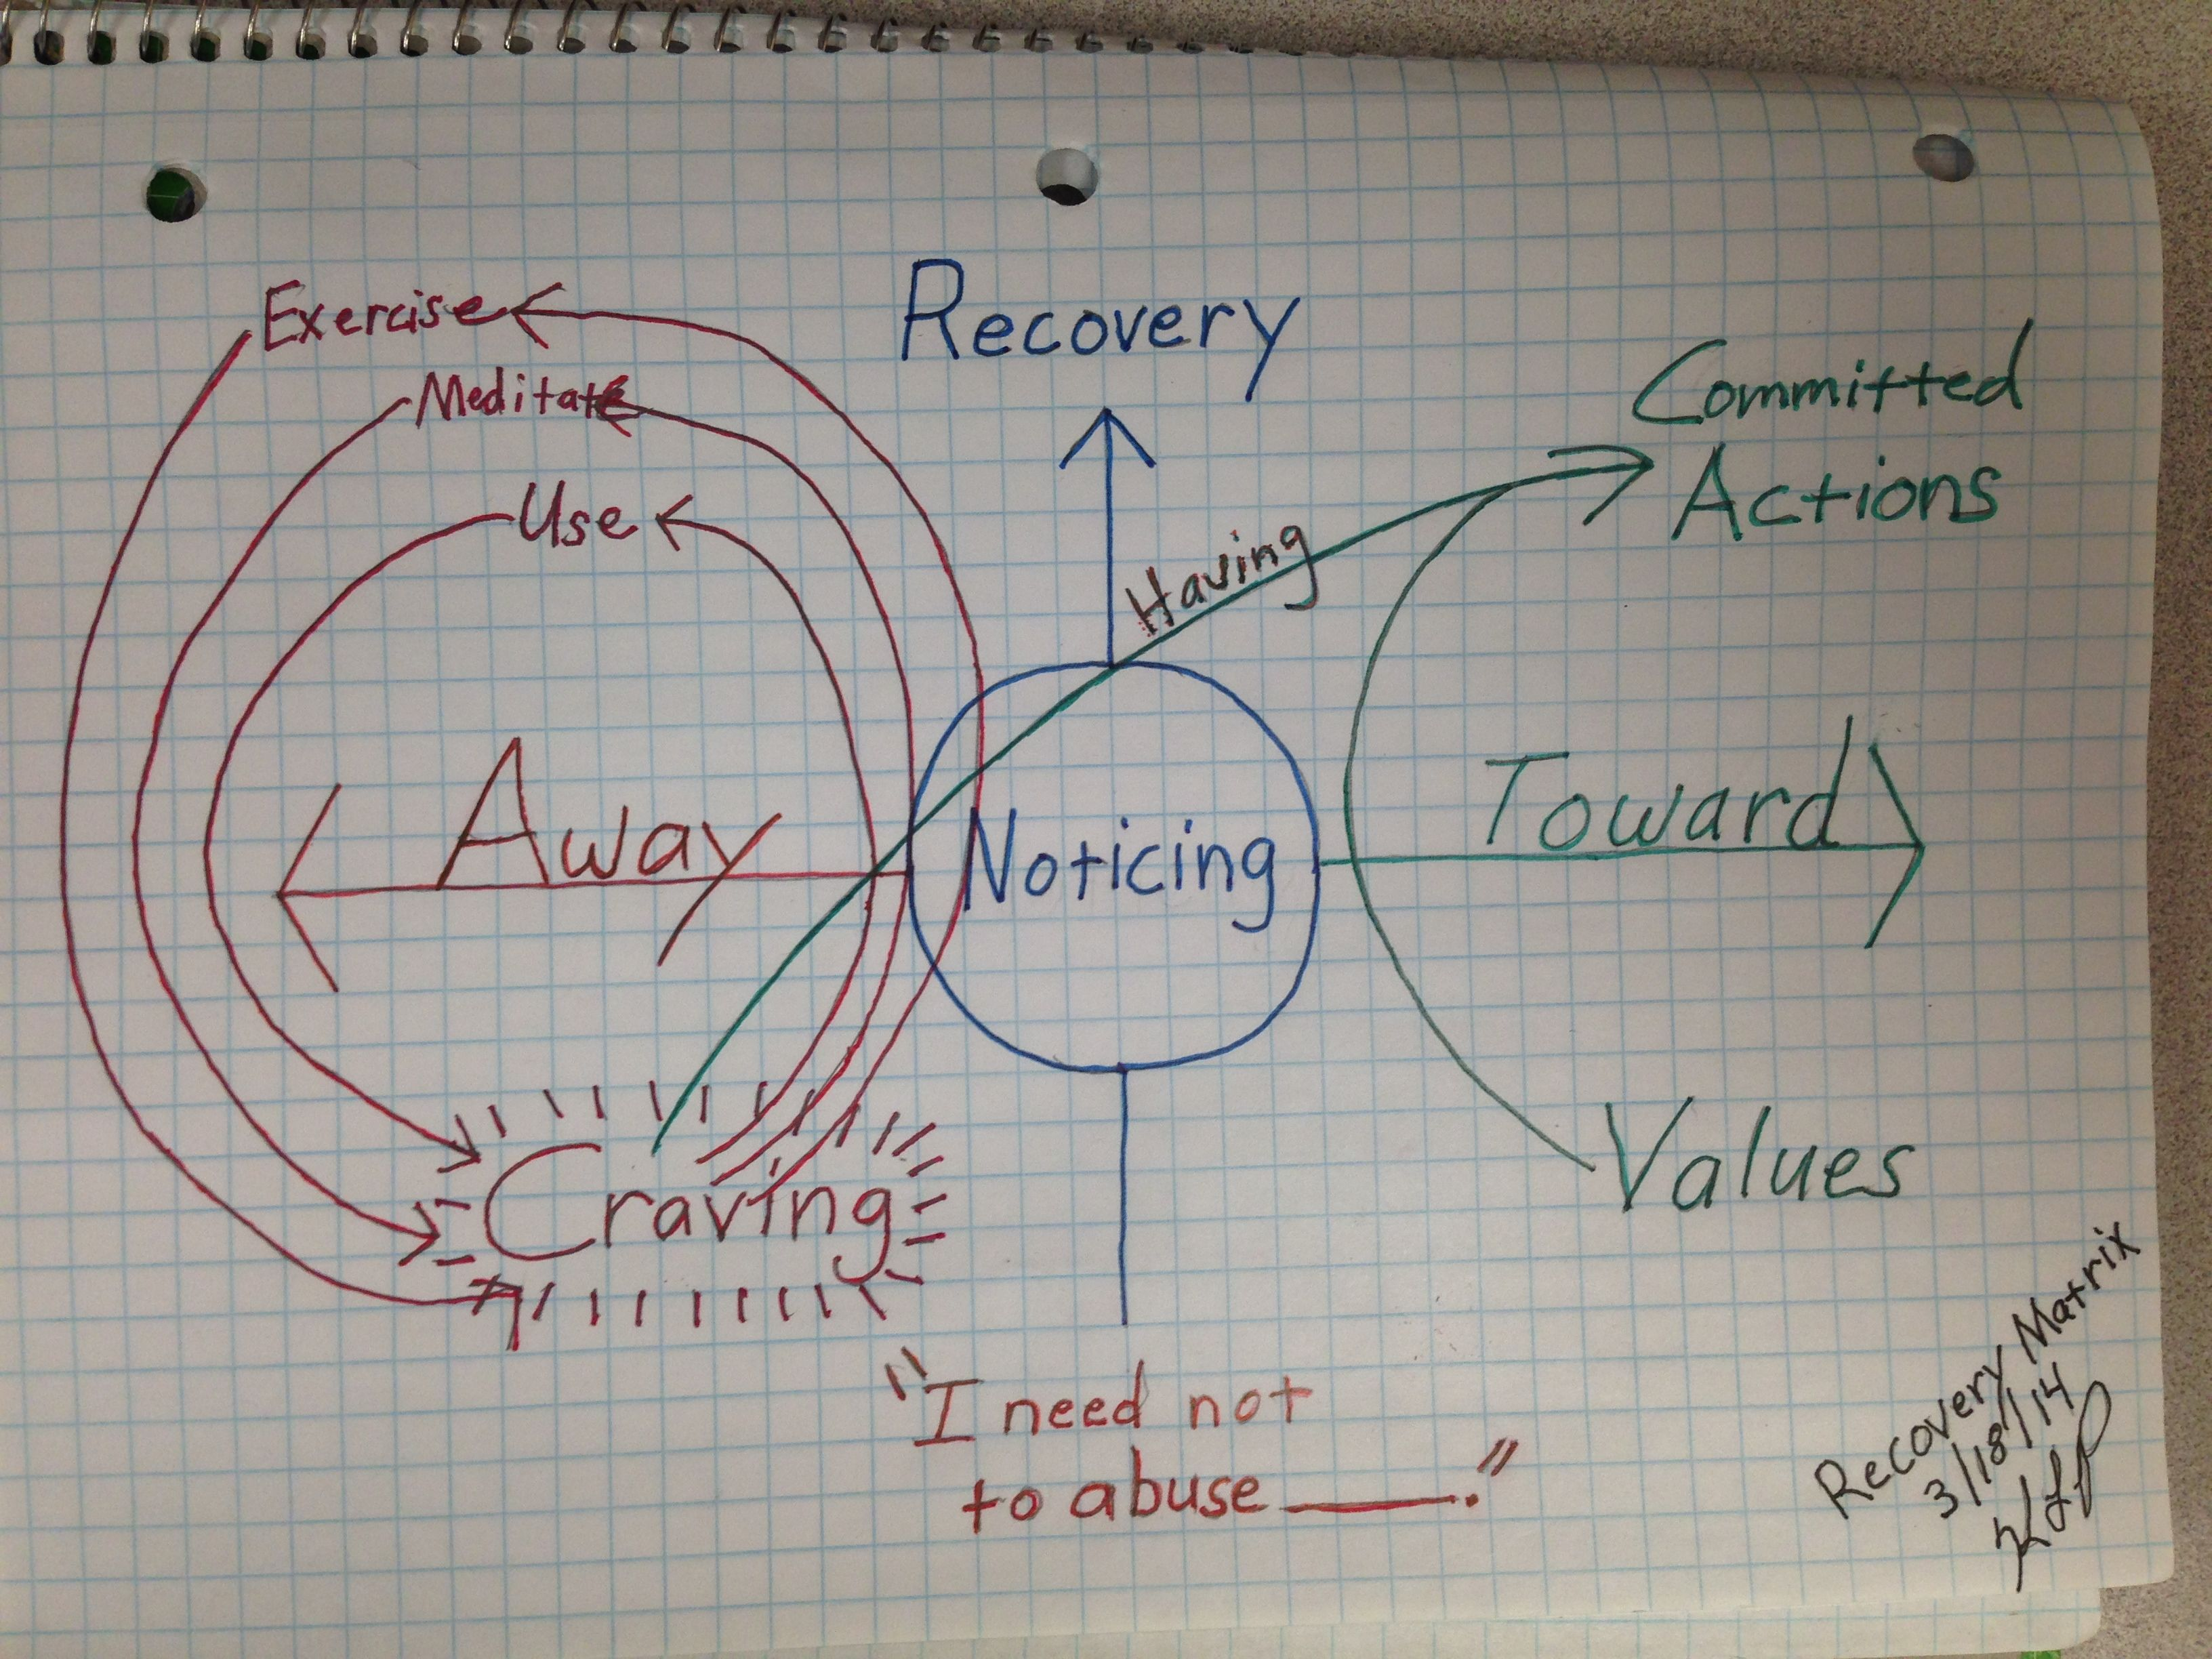 Acceptance And Commitment Therapy Process Shown On The Matrix This One Is For Recovery From